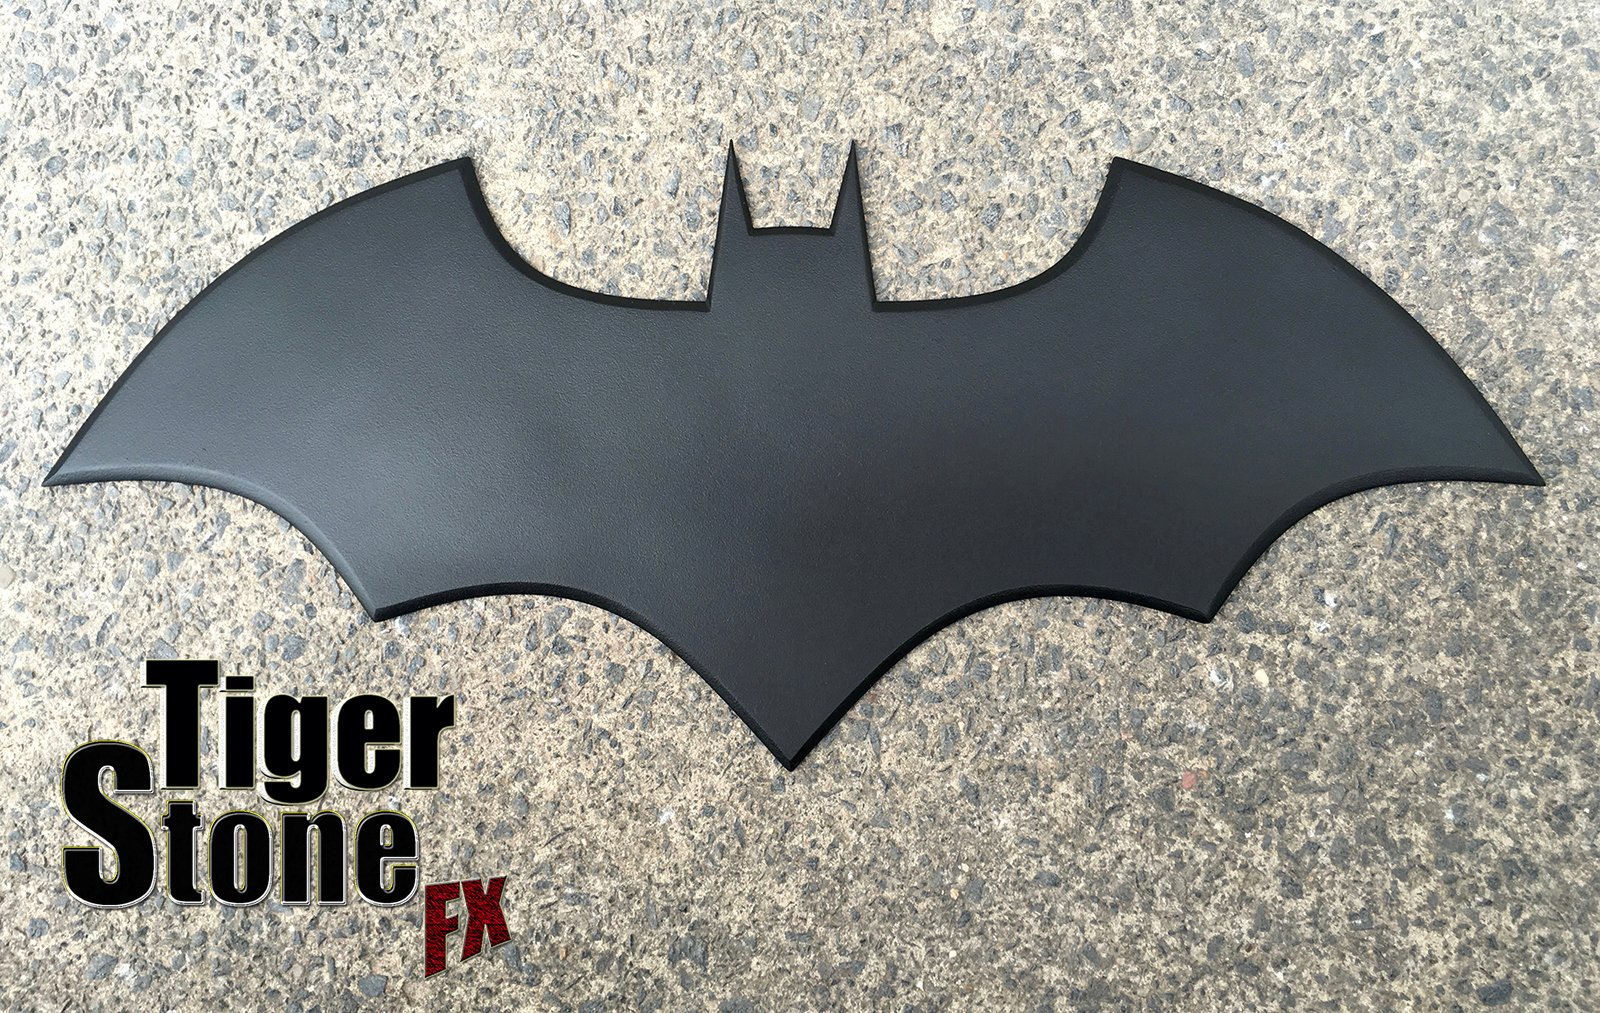 Batman Chest Emblem Unique New 52 Batman Inspired Chest Emblem Tiger Stone Fx